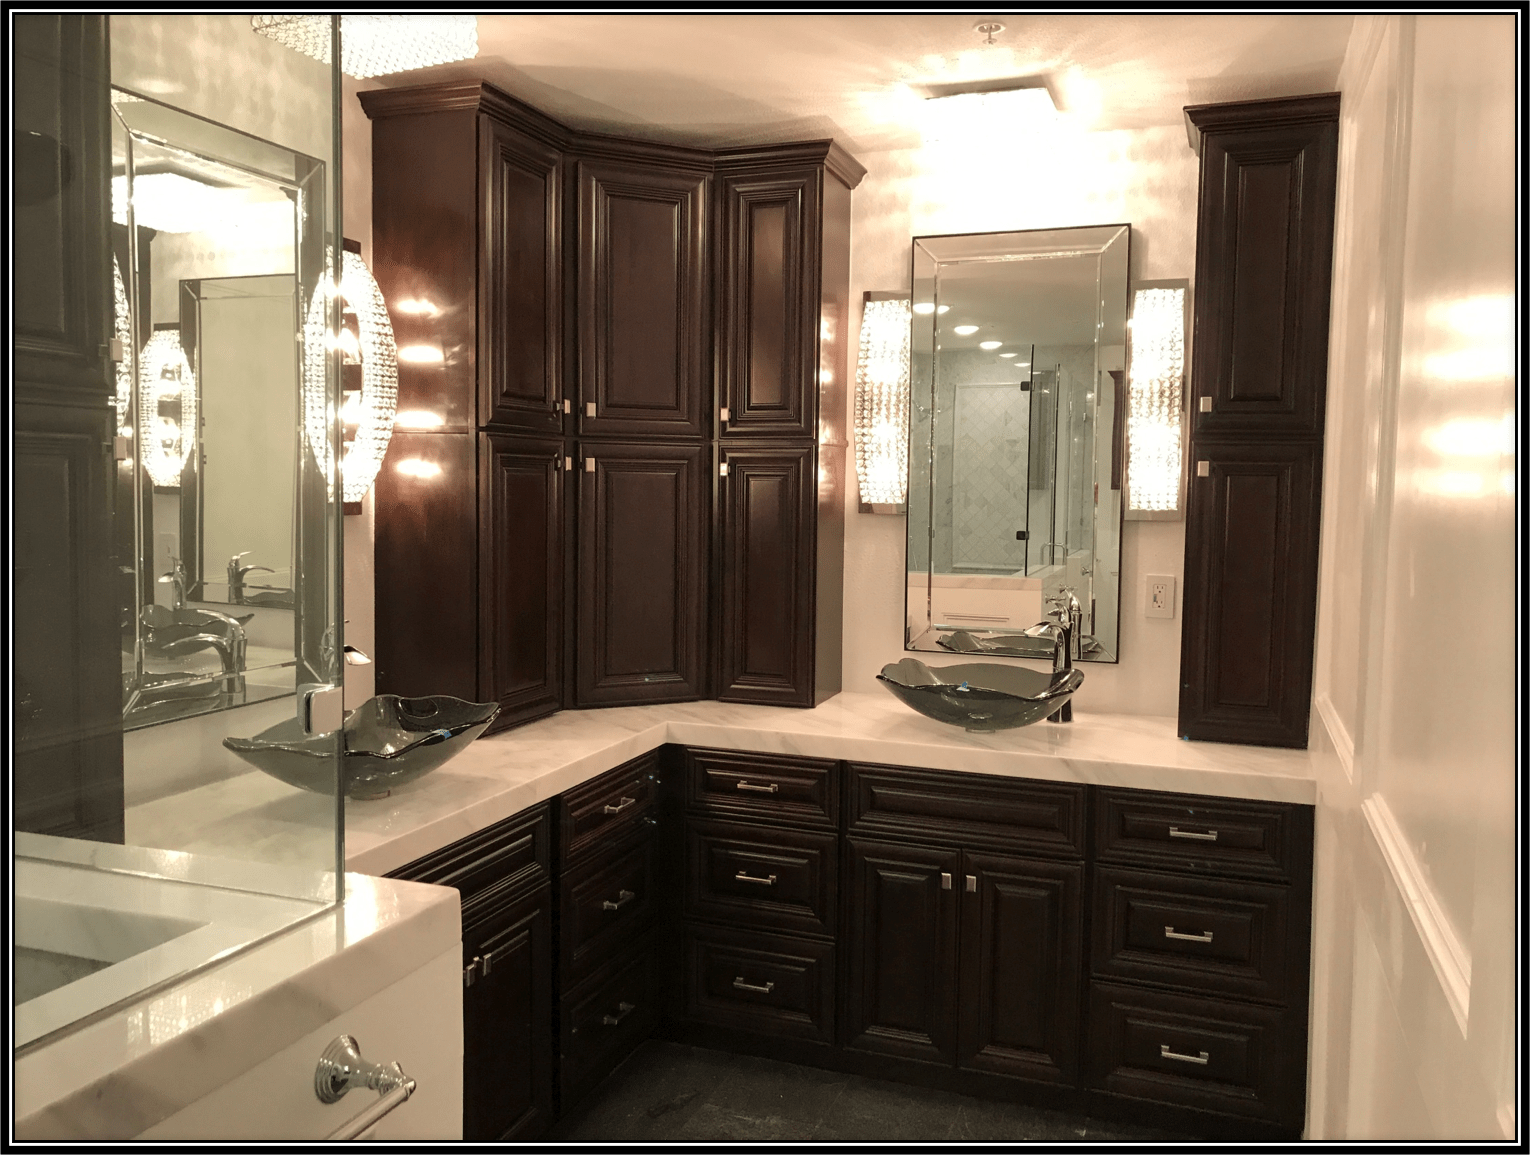 Kitchen bath remodeling in houston tx kitchen bath for Bathroom remodel 77084